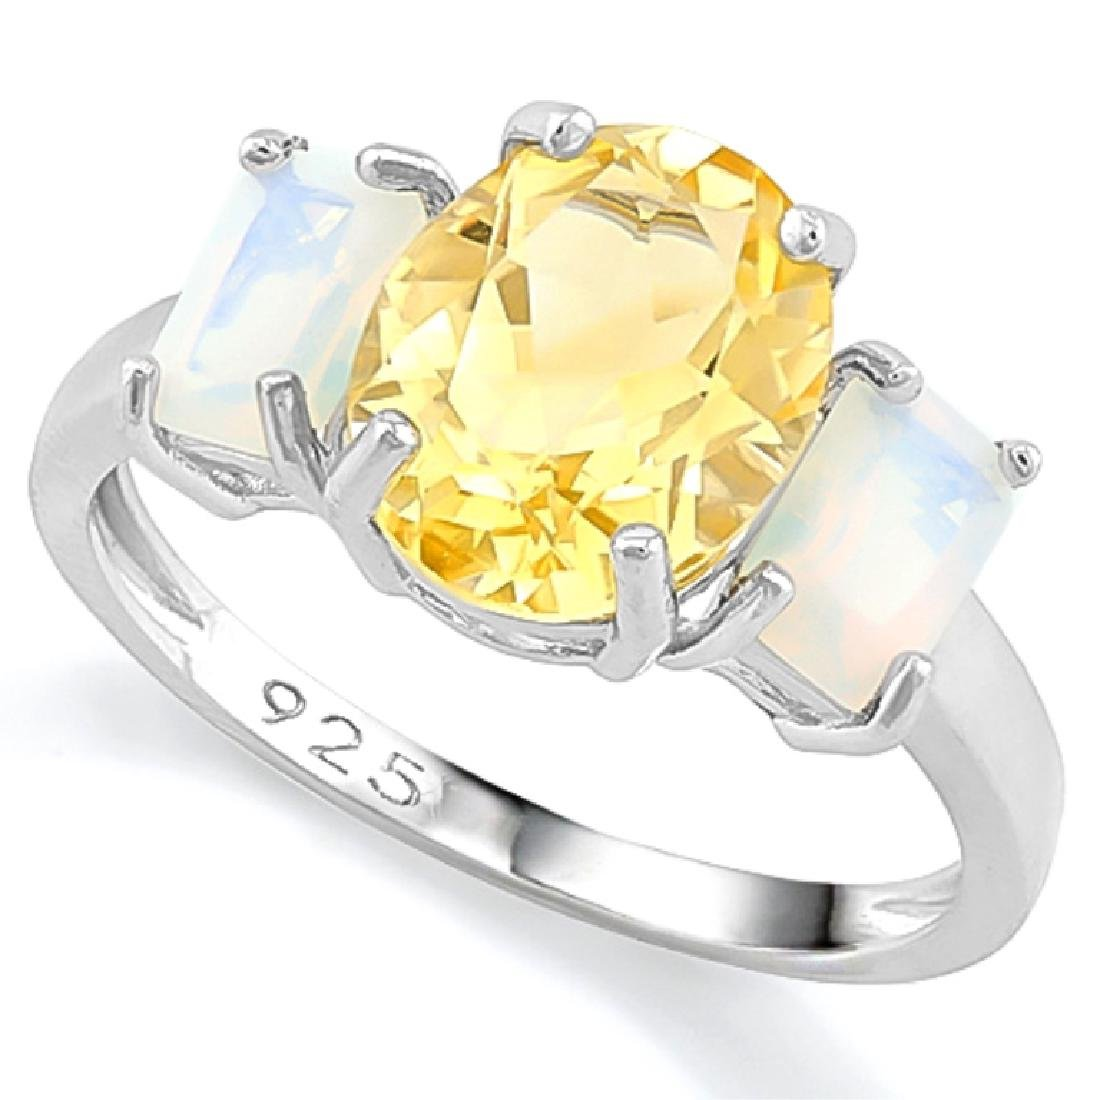 UNIQUE GOLDEN CITRINE/FIRE OPAL TRIPLE STONE RING